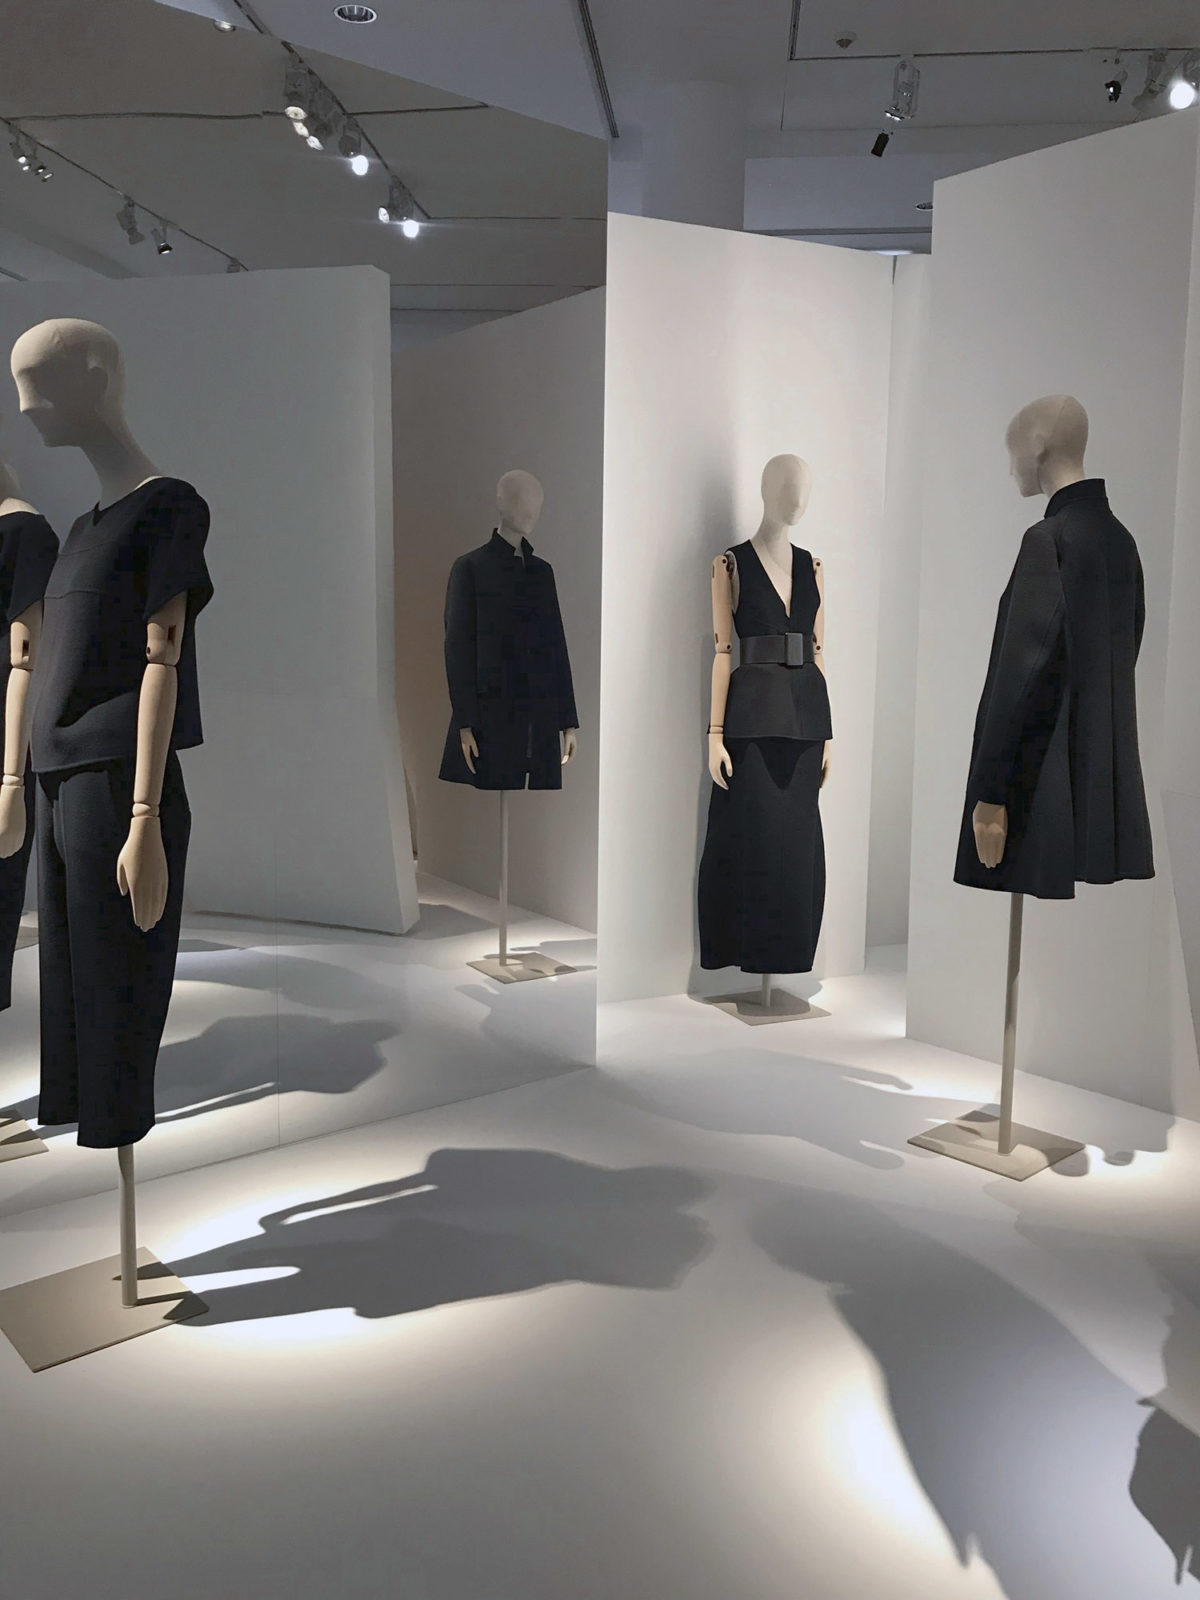 JIL SANDER HOLDS FIRST EVER SOLO EXHIBITION IN FRANKFURT